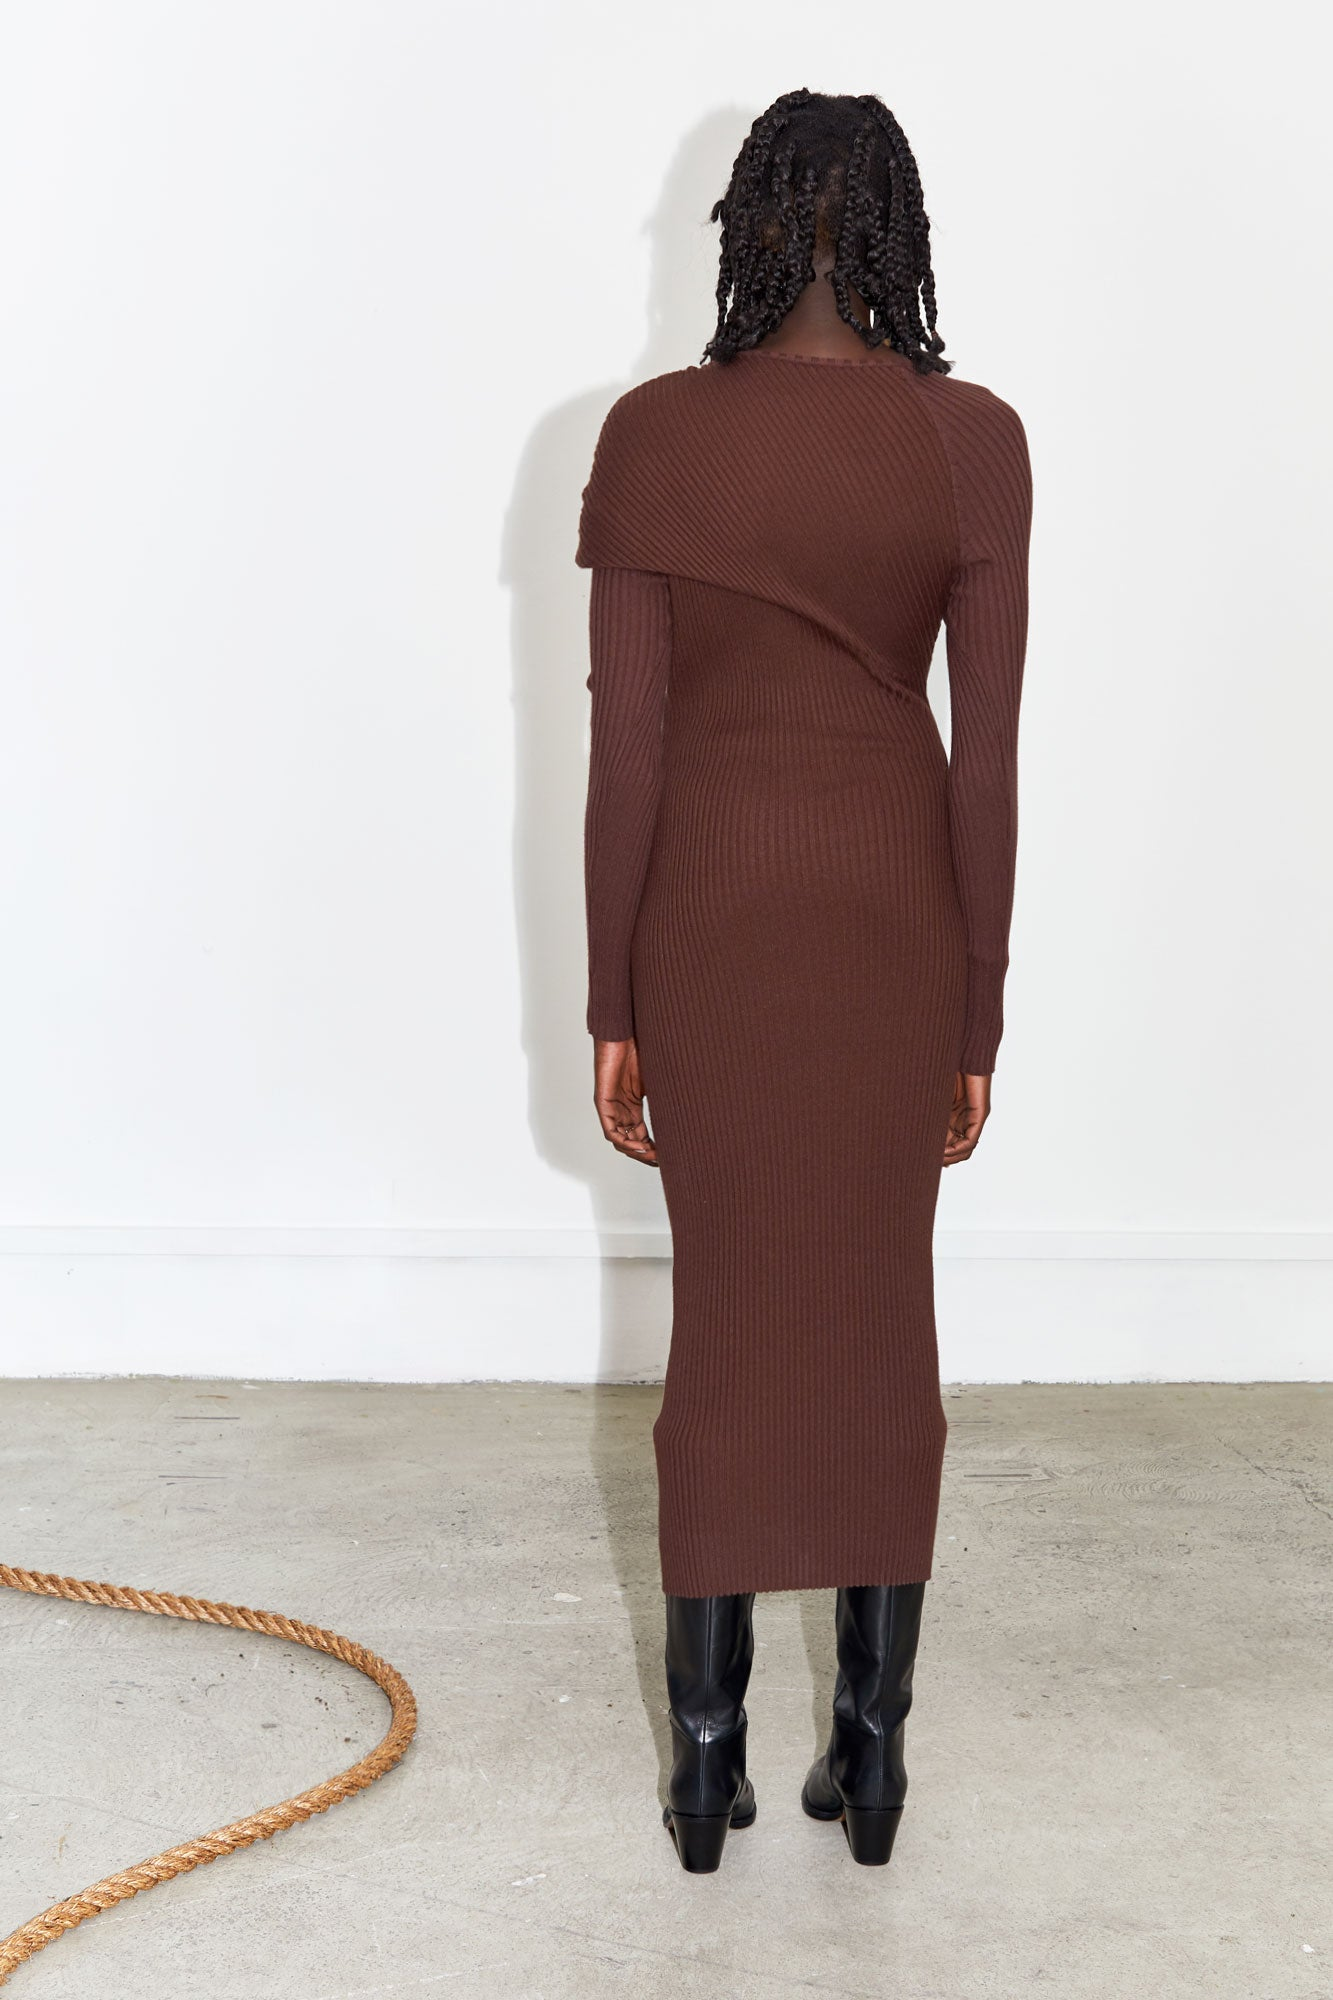 Fold Ribbed Knit Dress - Chocolate